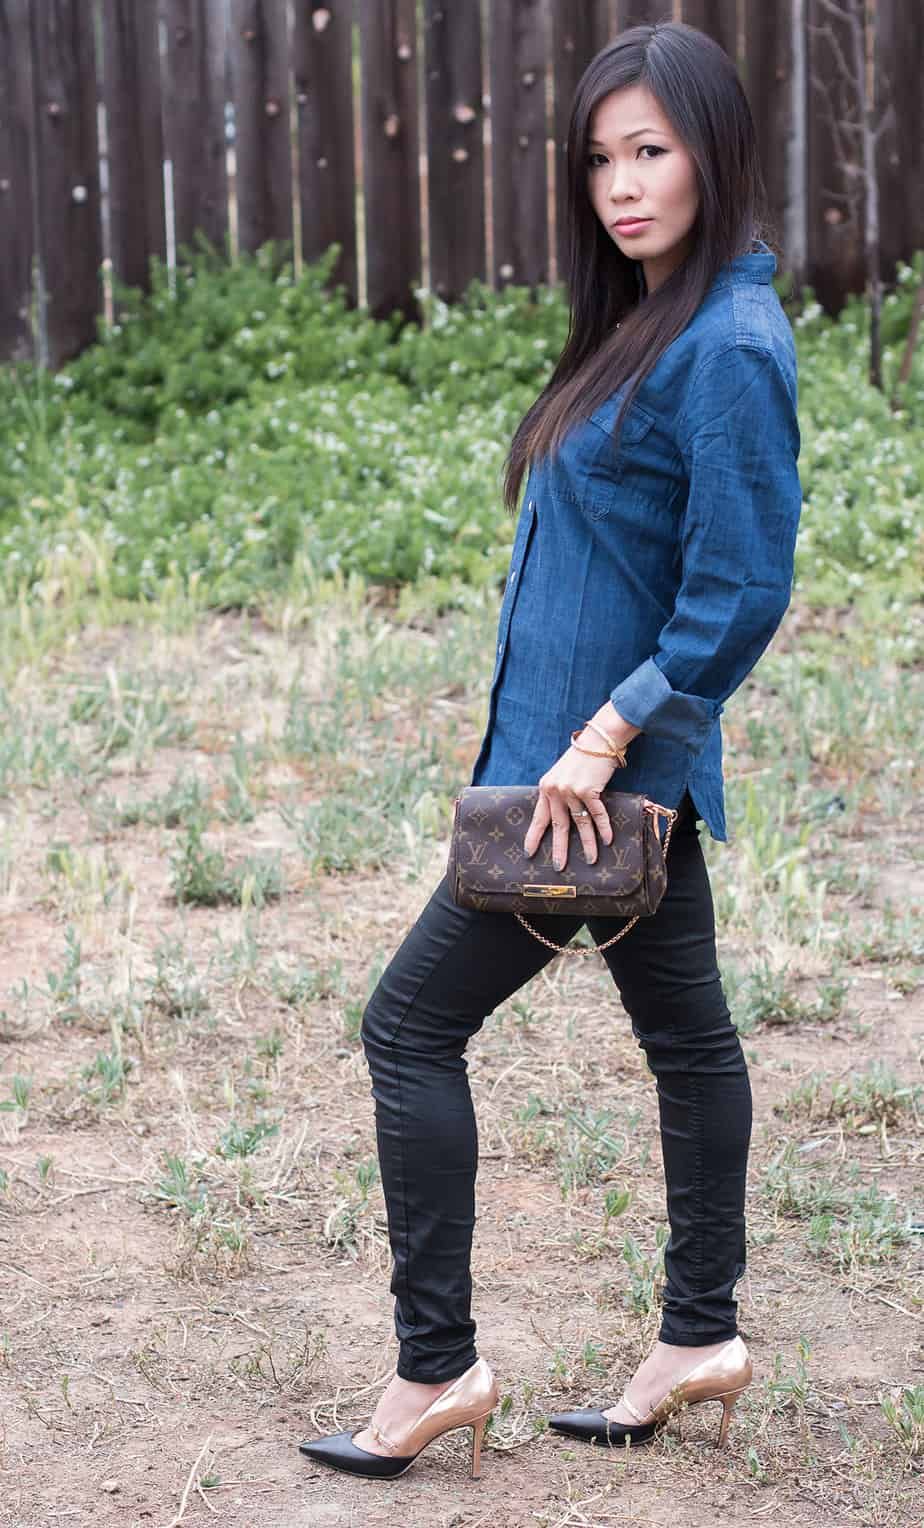 ann-taylor-denim-shirt-fashion-look